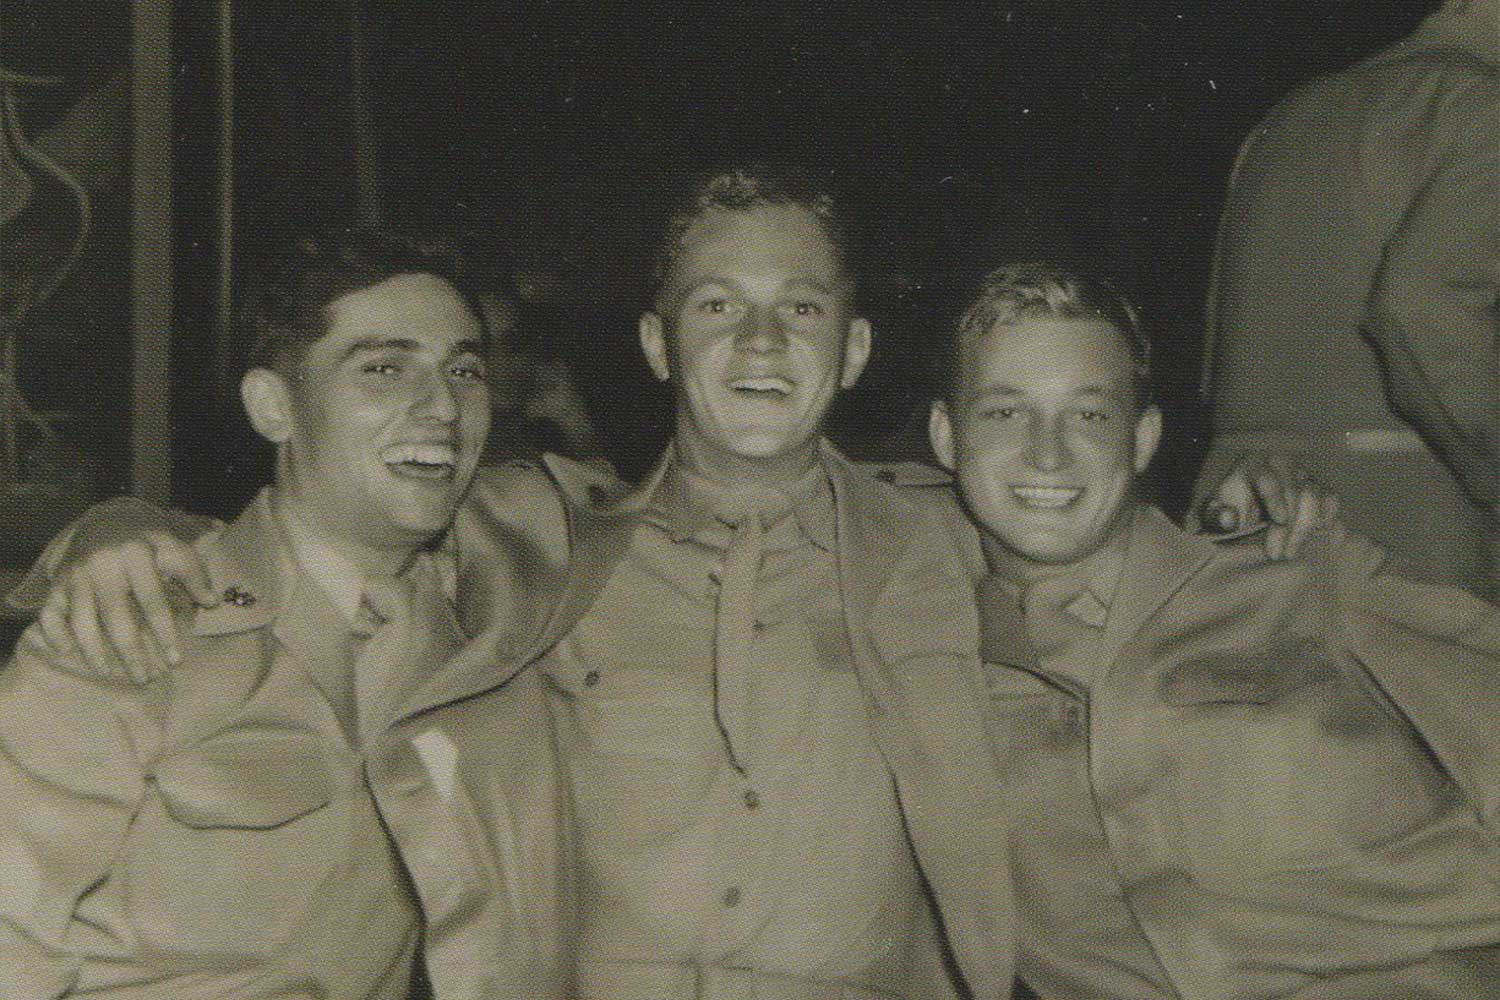 "Steve McQueen [center] shares a laugh with a pair of Marine buddies named Joe and Don upon his July 1947 platoon graduation at Parris Island, South Carolina. McQueen served a three-year stint and often told reporters he was busted down to private seven times to enhance his rebel status. However, his military file proved he was a competent soldier — McQueen ascended in rank rather quickly despite not serving in the Marines during wartime. (Image Credit: Bonham's Auctioneers / Courtesy of Marshall Terrill / appears in ""Steve McQueen: The Life and Legend of a Hollywood Icon"" [2010] / medium.com)"